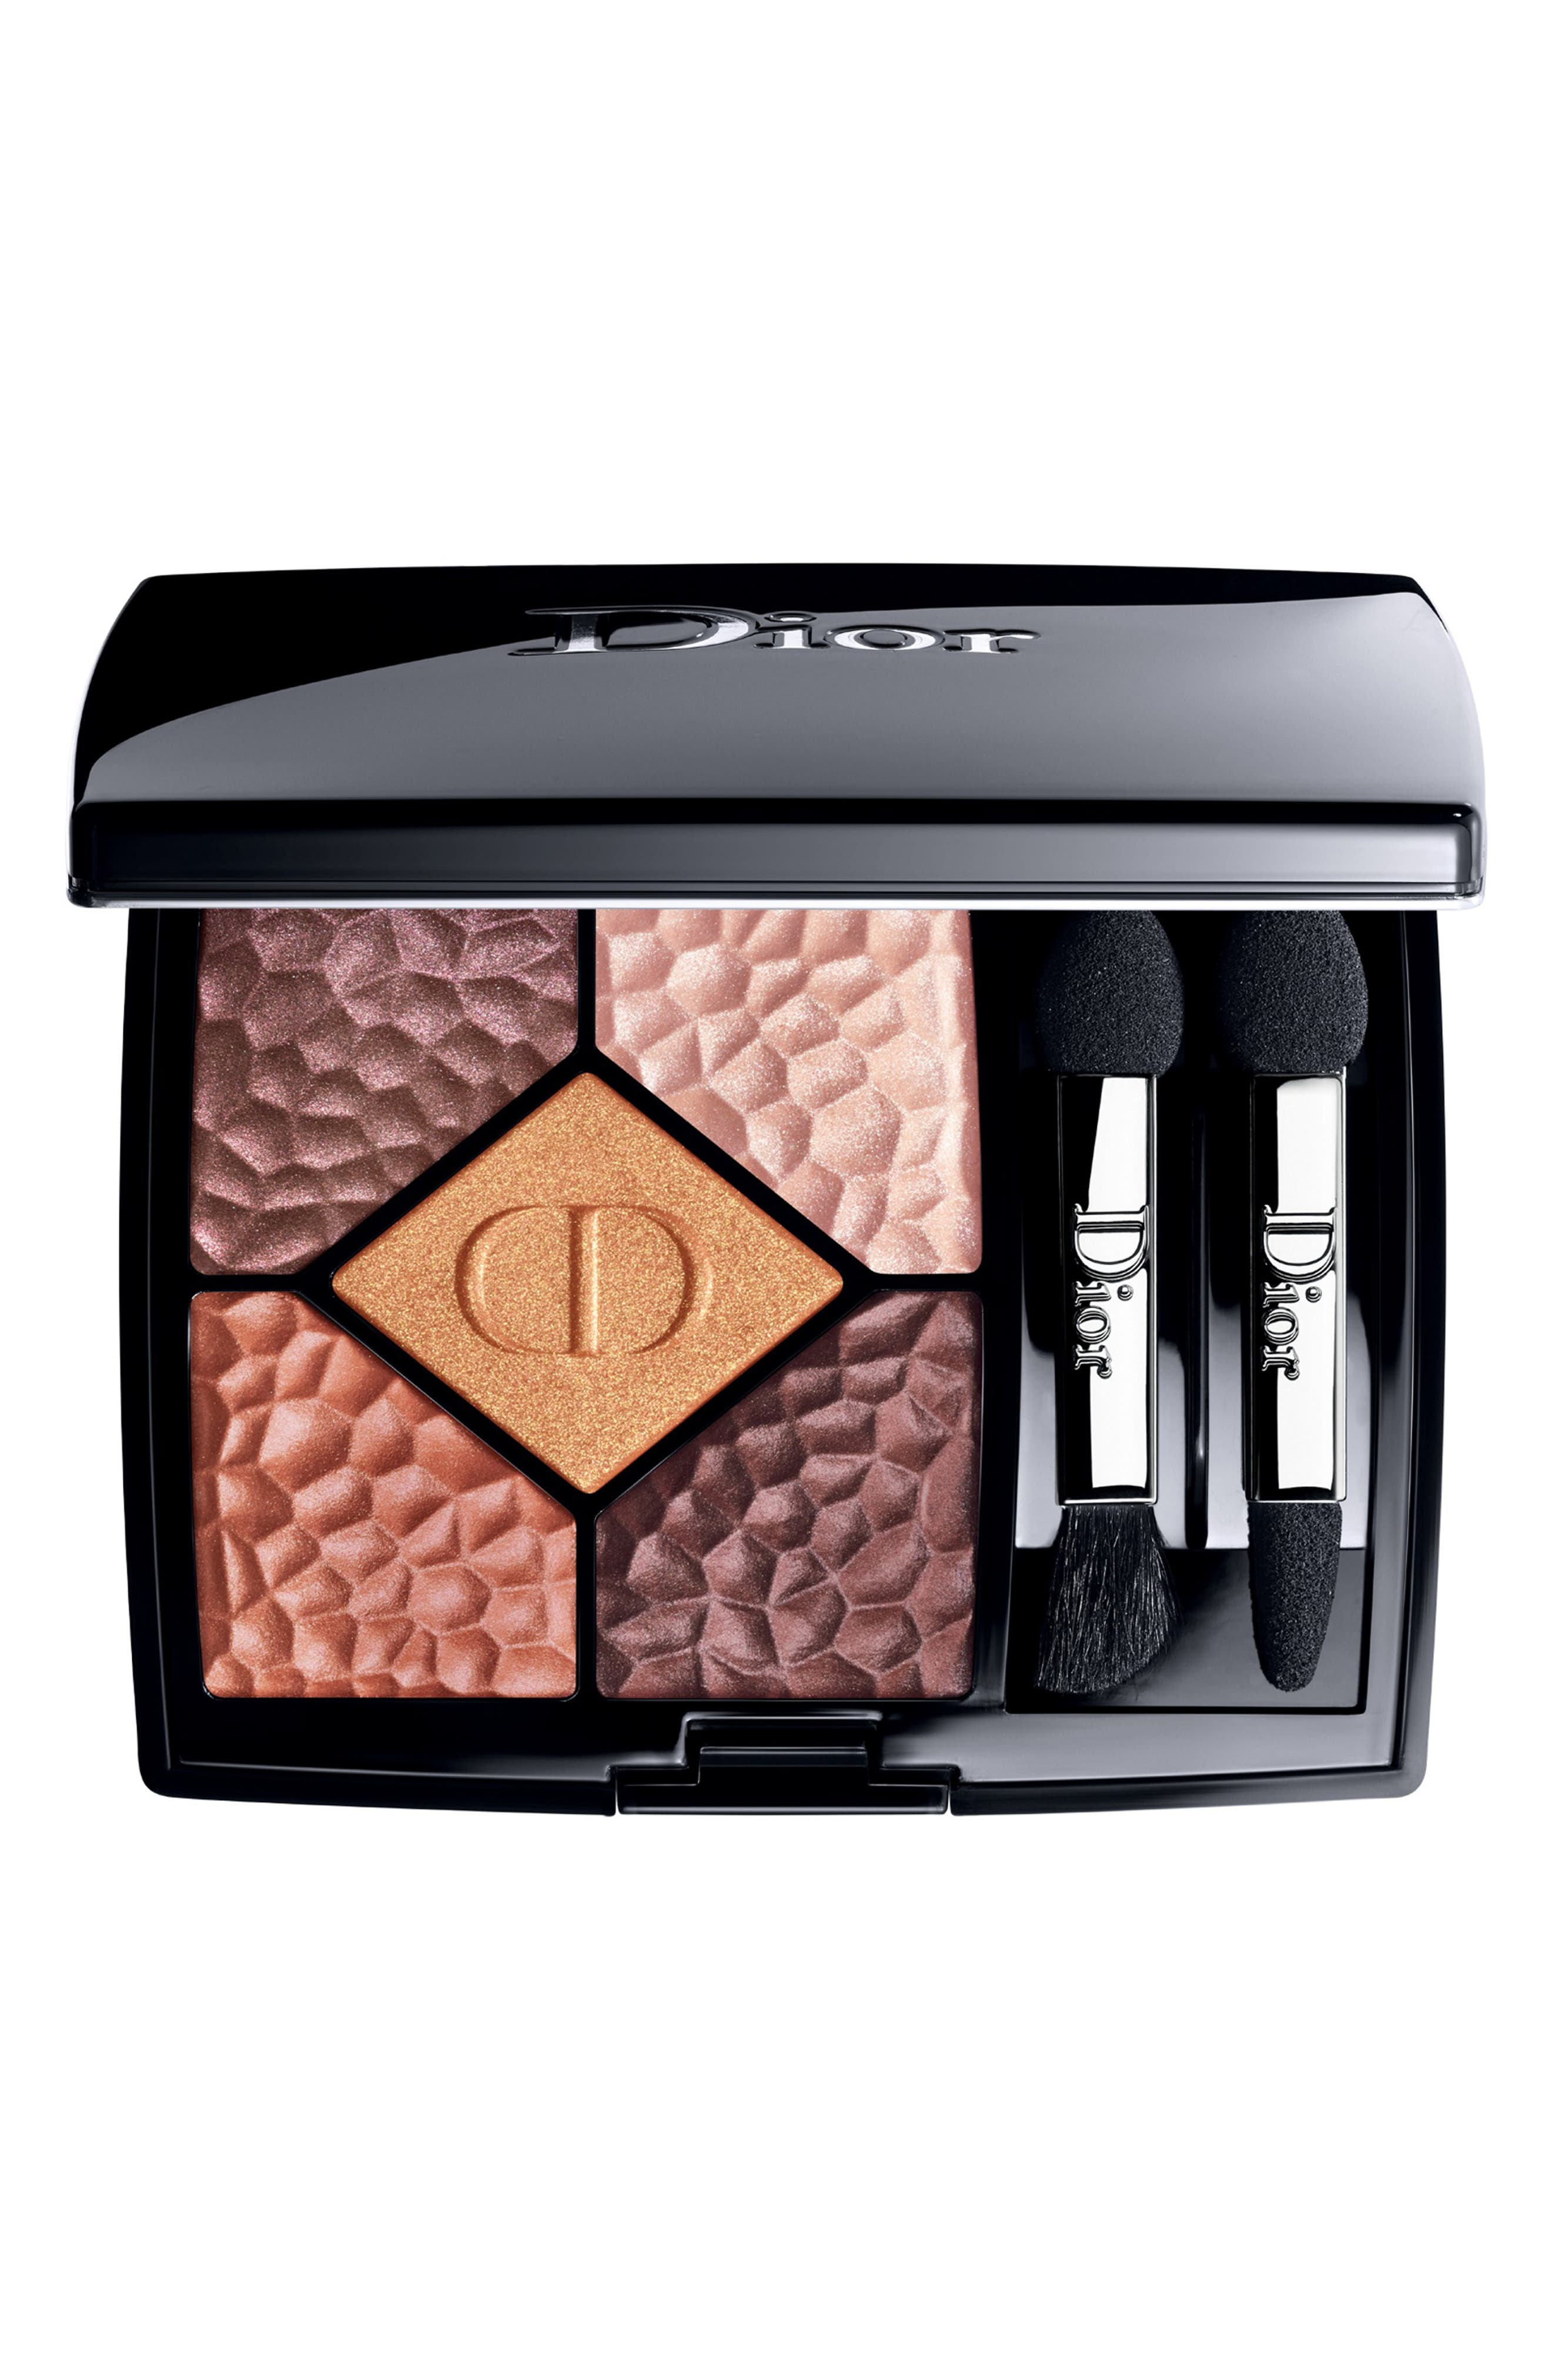 Dior Diorshow 5 Couleurs Colors & Effects Eyeshadow Palette - 786 Terra